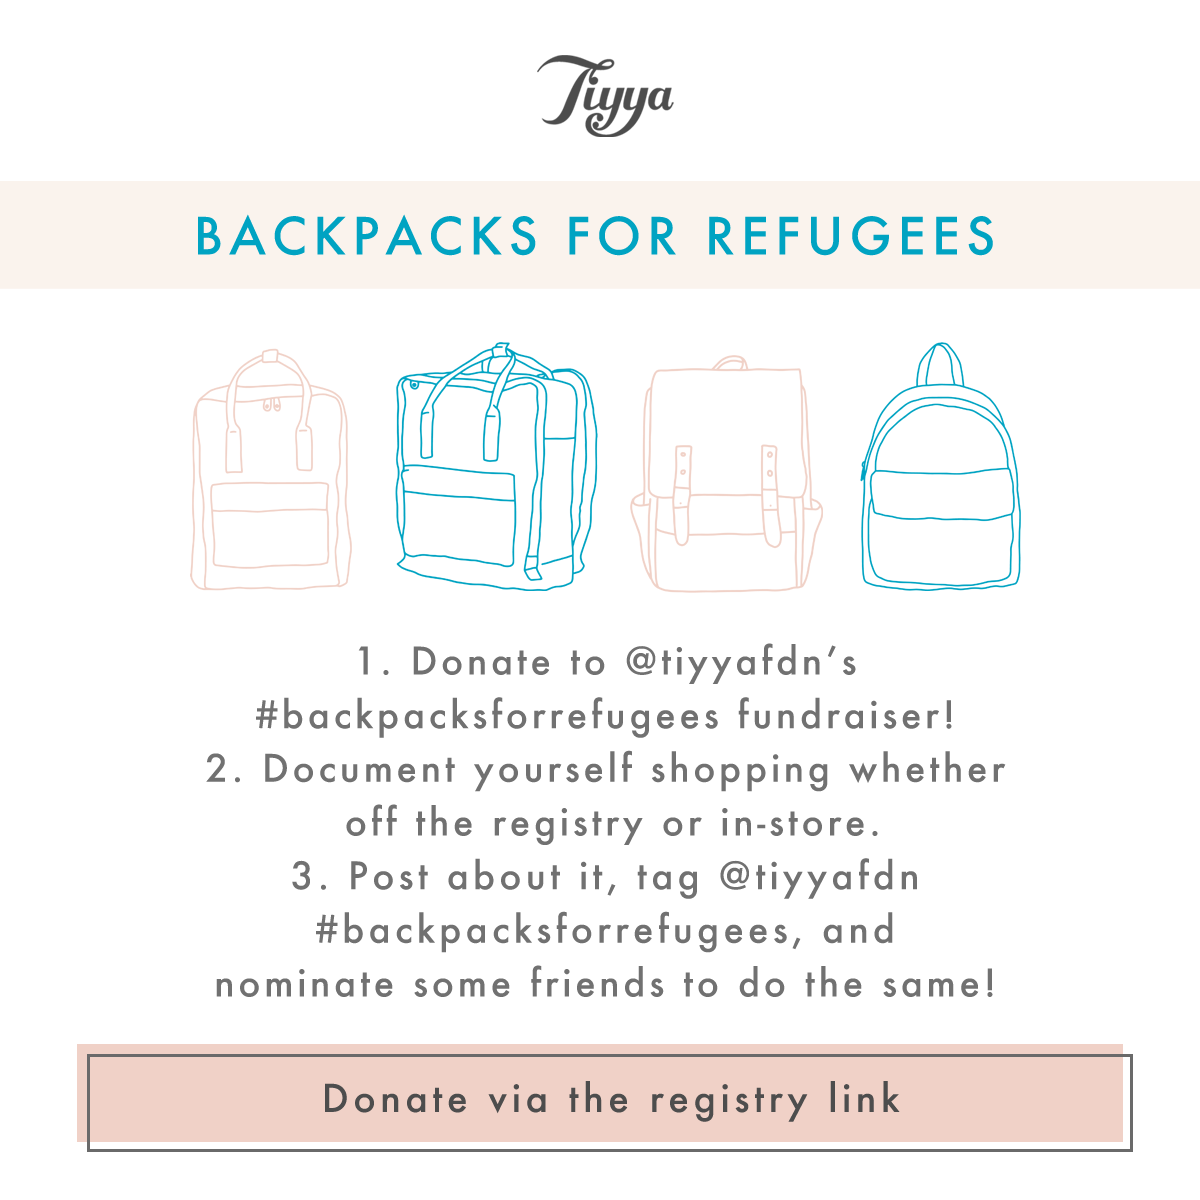 Backpacks for Refugees - 100 Layer Cakelet